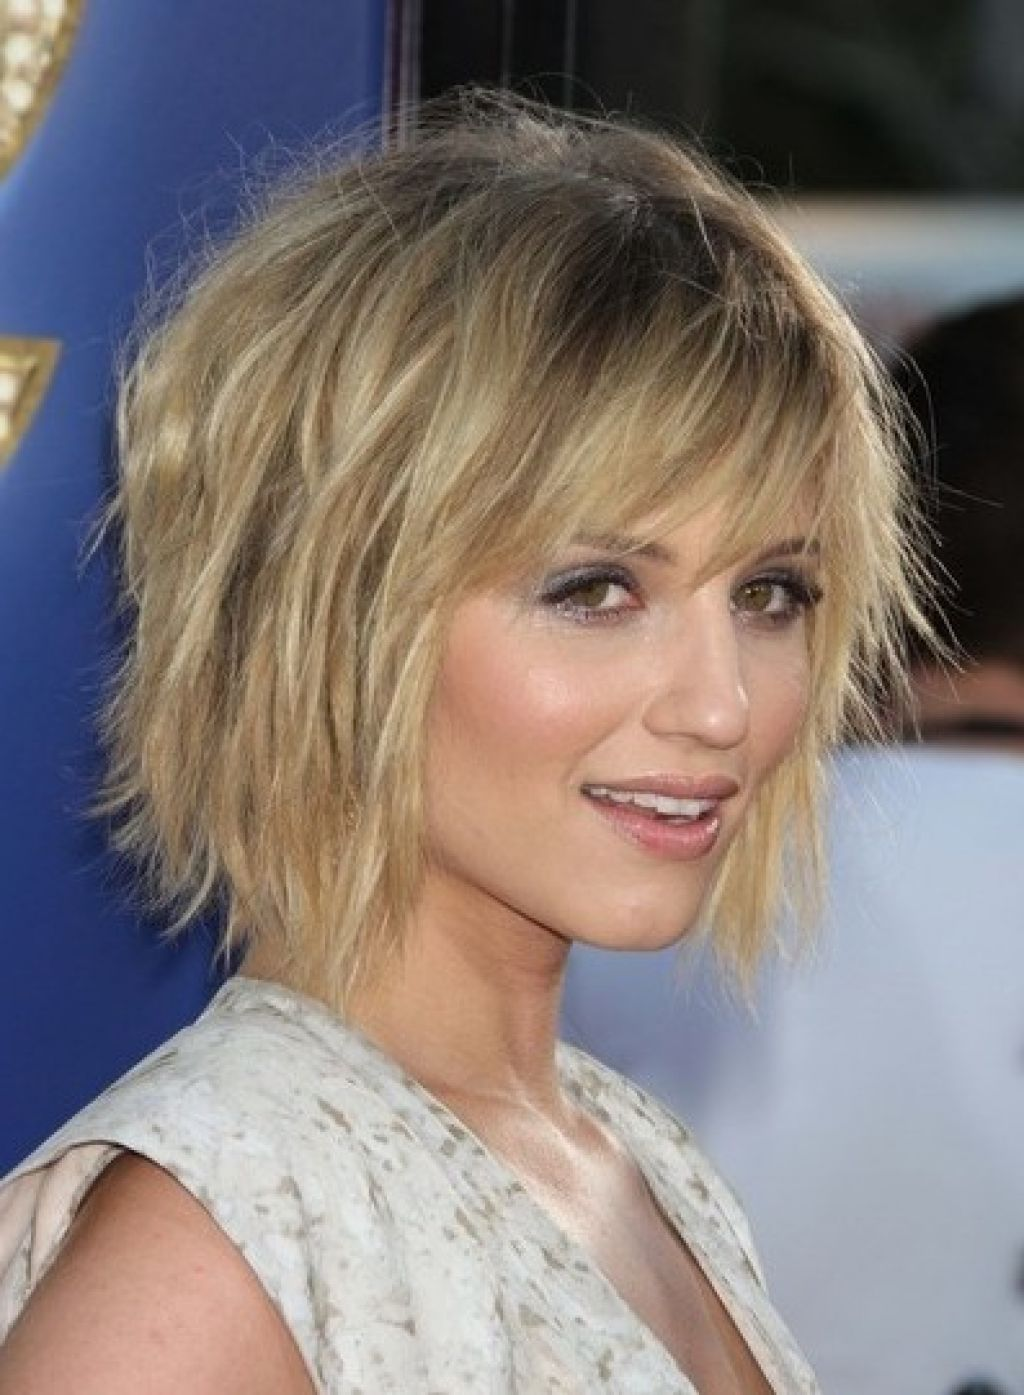 Top 10 hottest trending short choppy hairstyles with bangs - HairStyles for Women